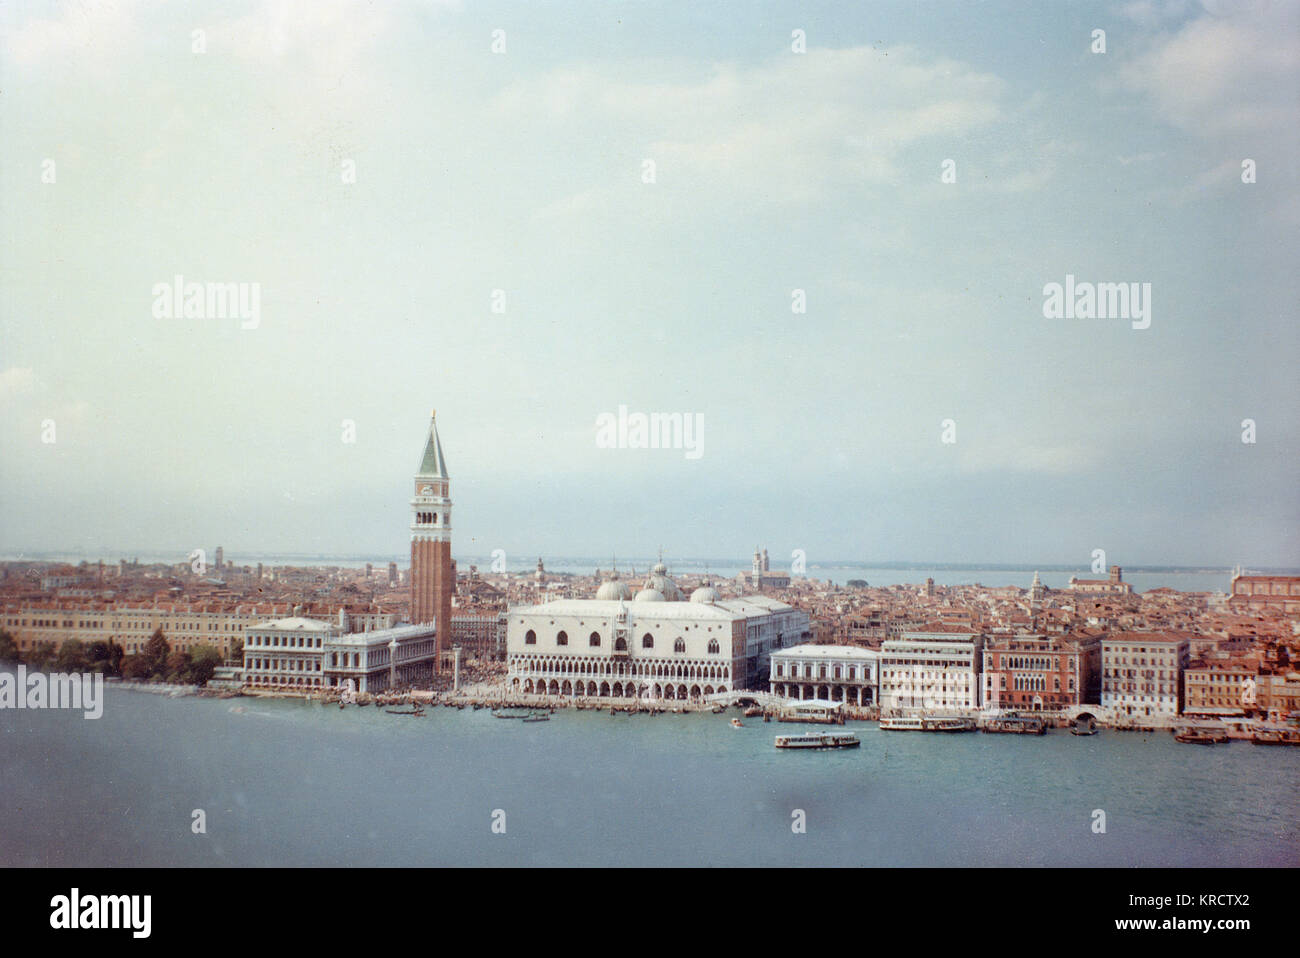 General view of Venice, Italy. Date: 1968 - Stock Image